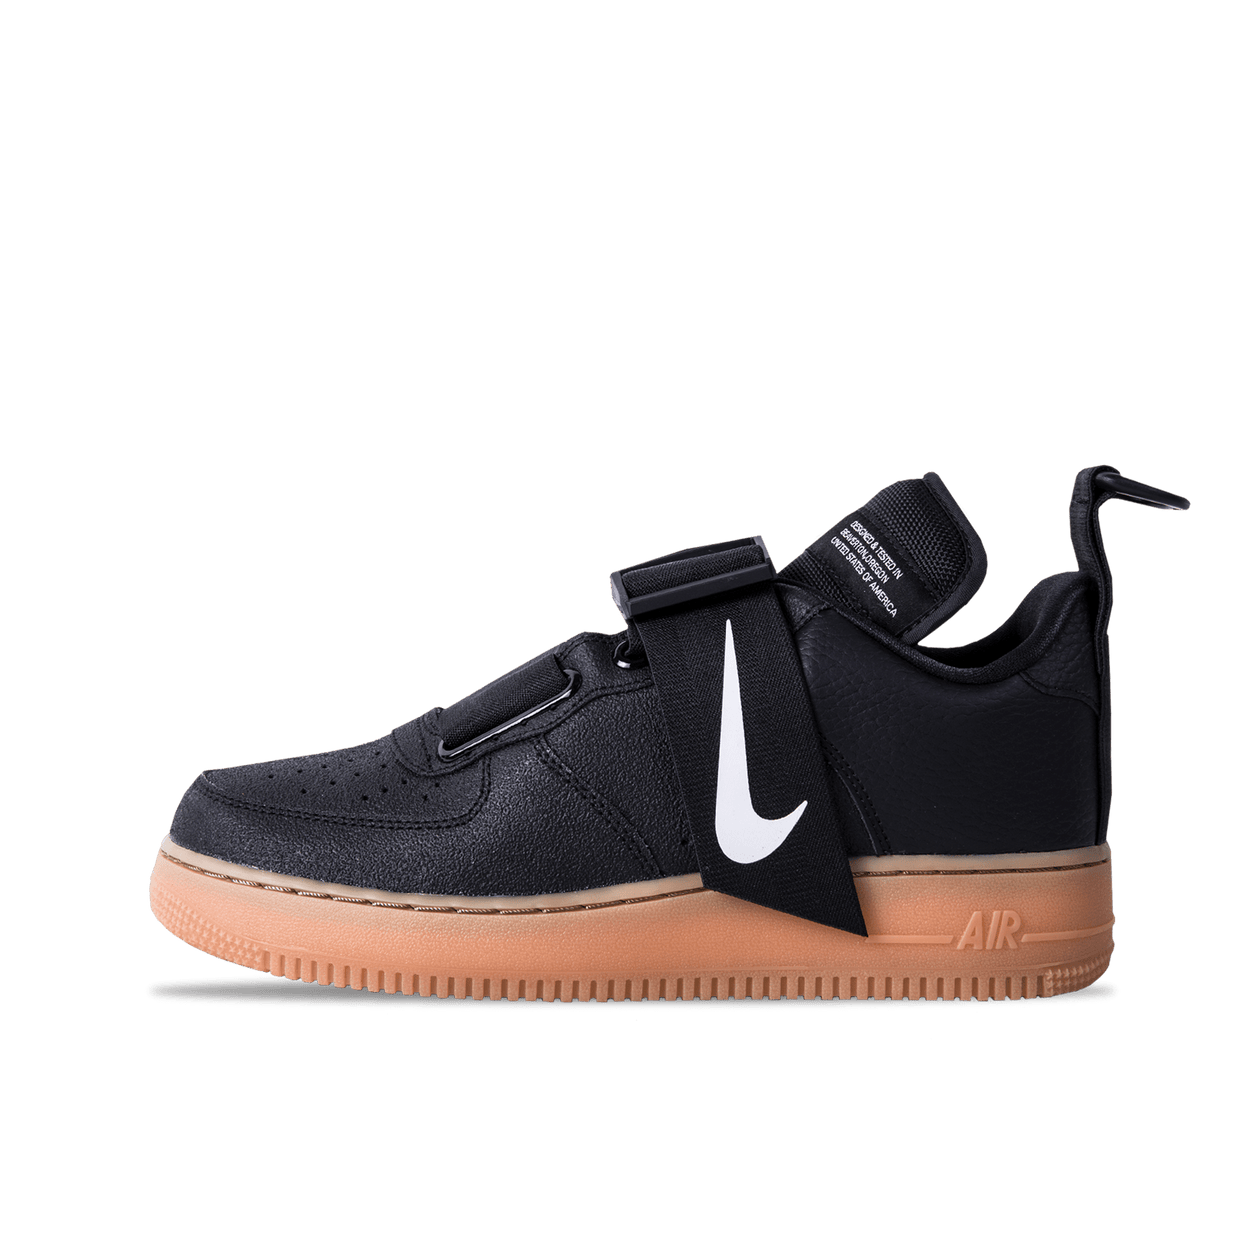 air force 1 gomma